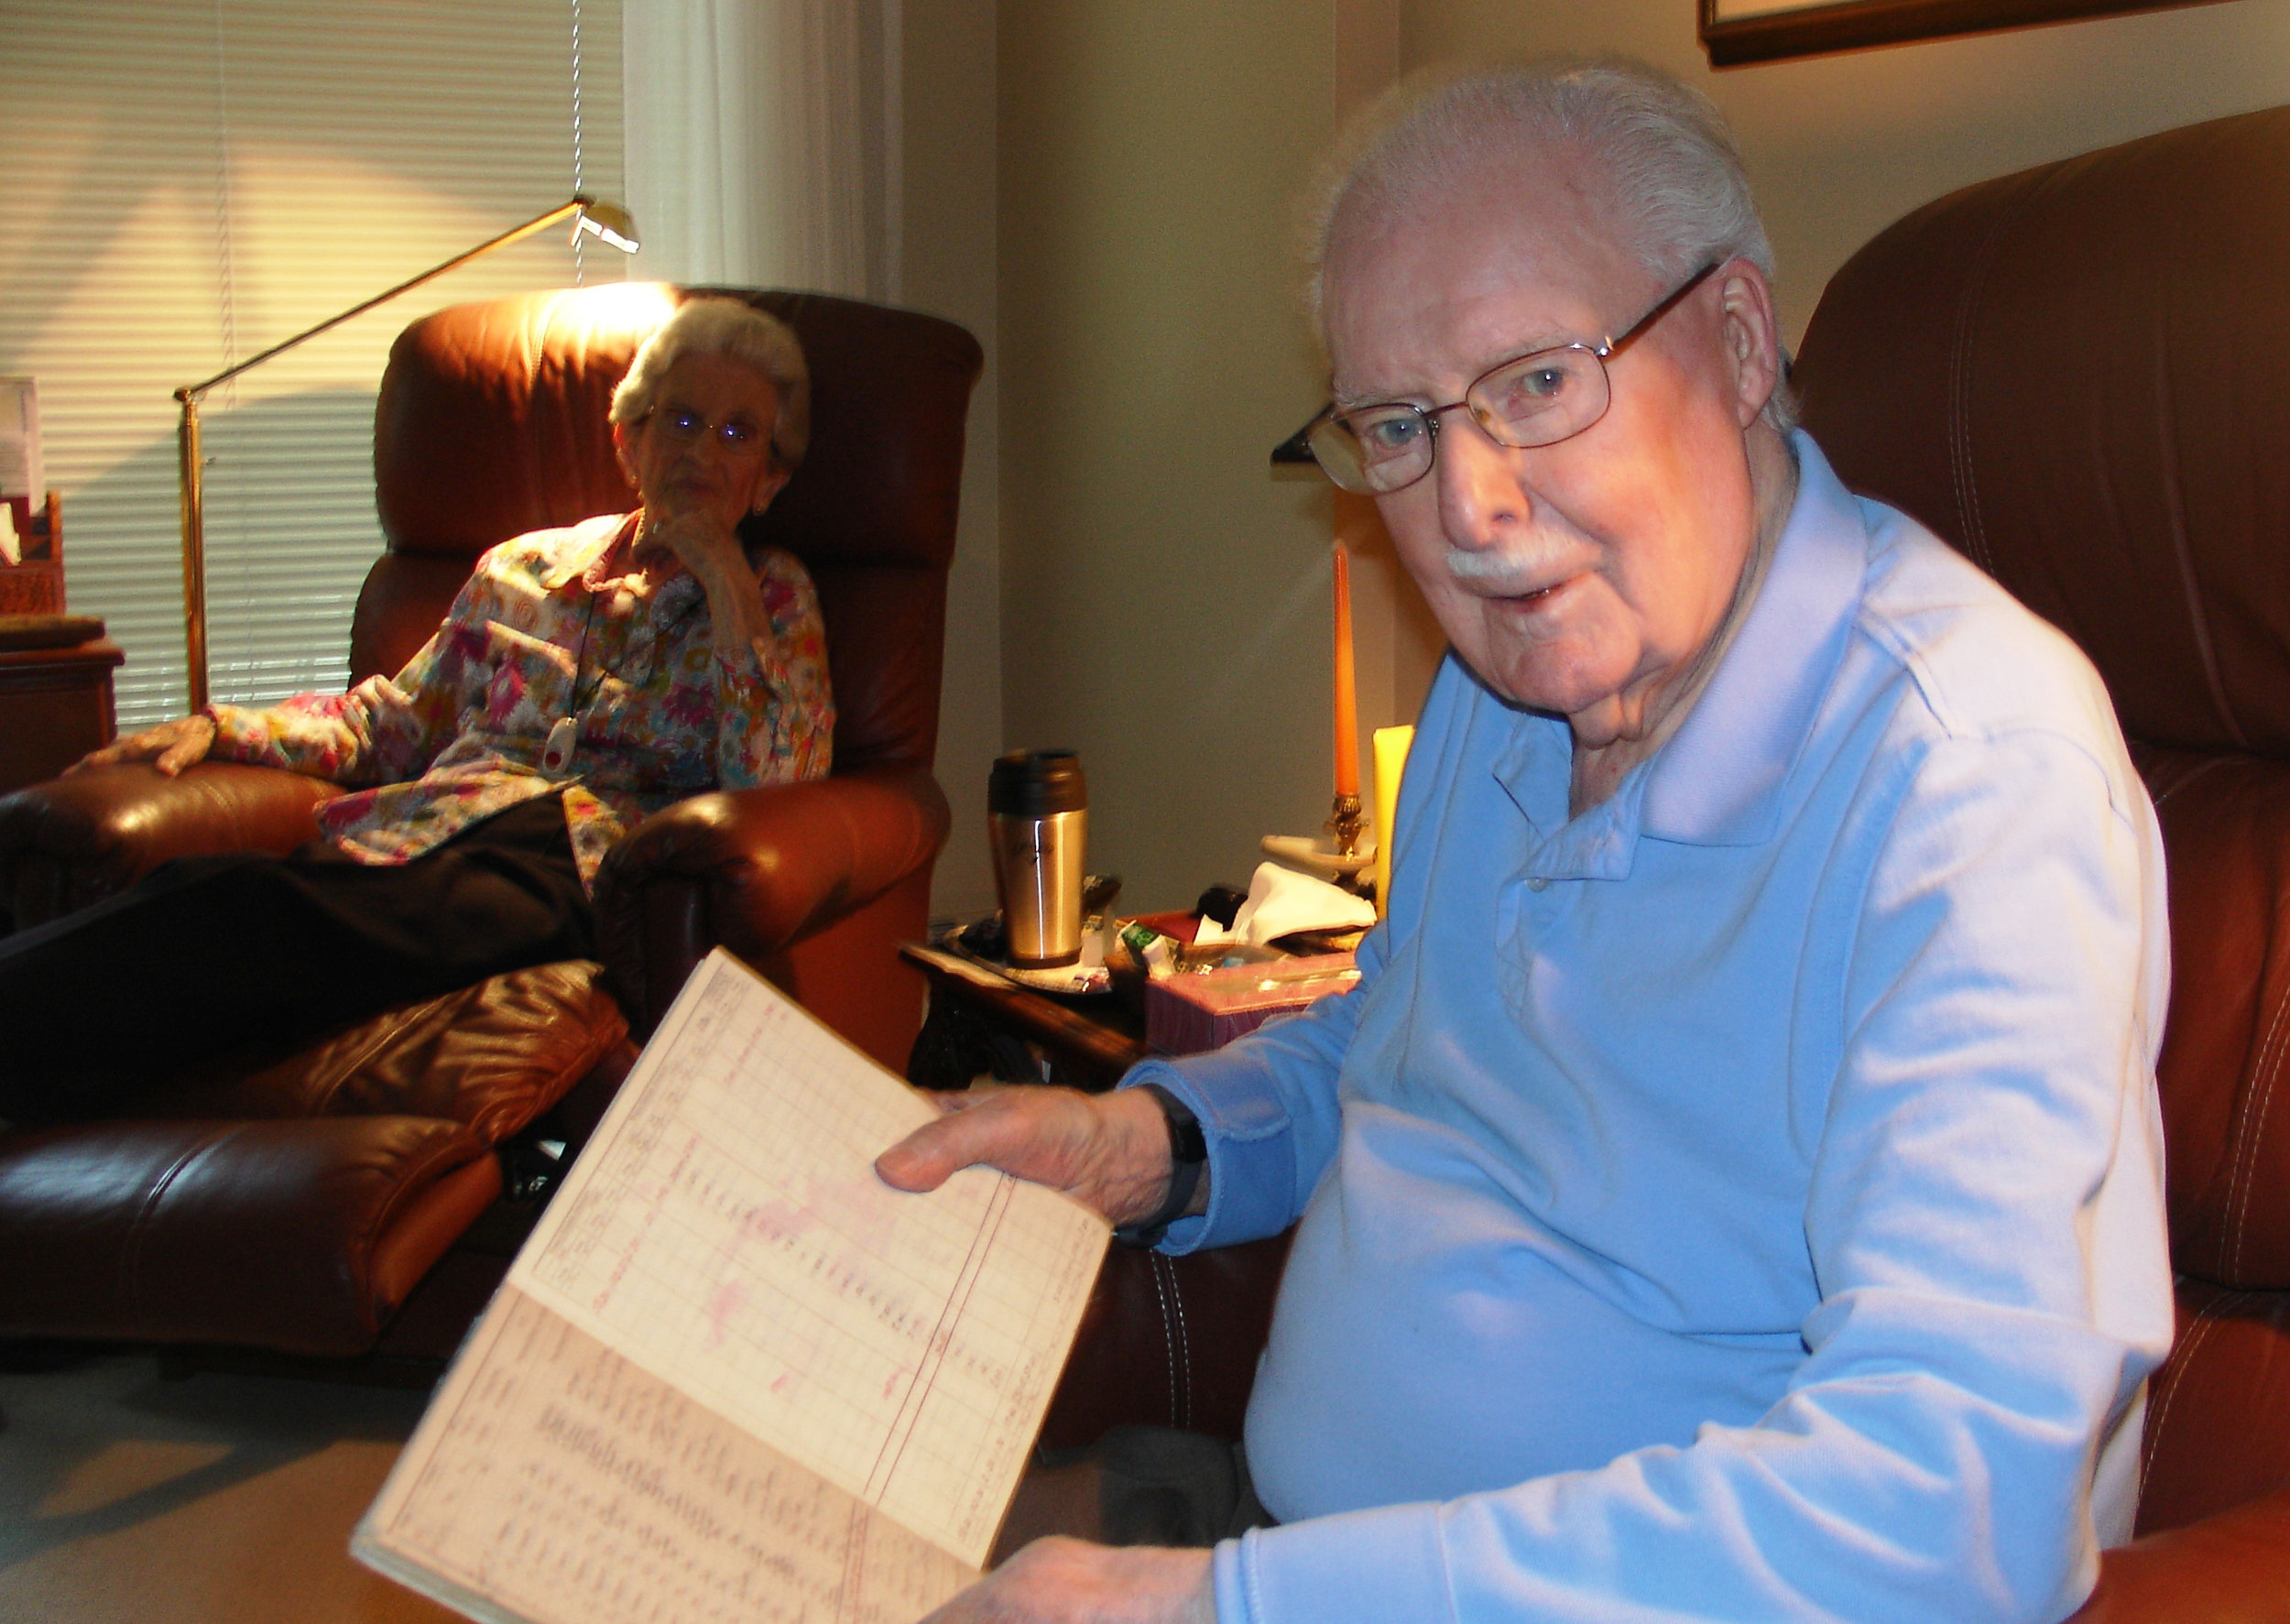 In this 2014 photo, Cliff Black is seen reviewing his old pilot's log book, which showed his entry for September 22, 1941, the day he spotted the wreckage of Anson N9818 near the peak of Old Settler Mountain, as his wife Sue looks on.